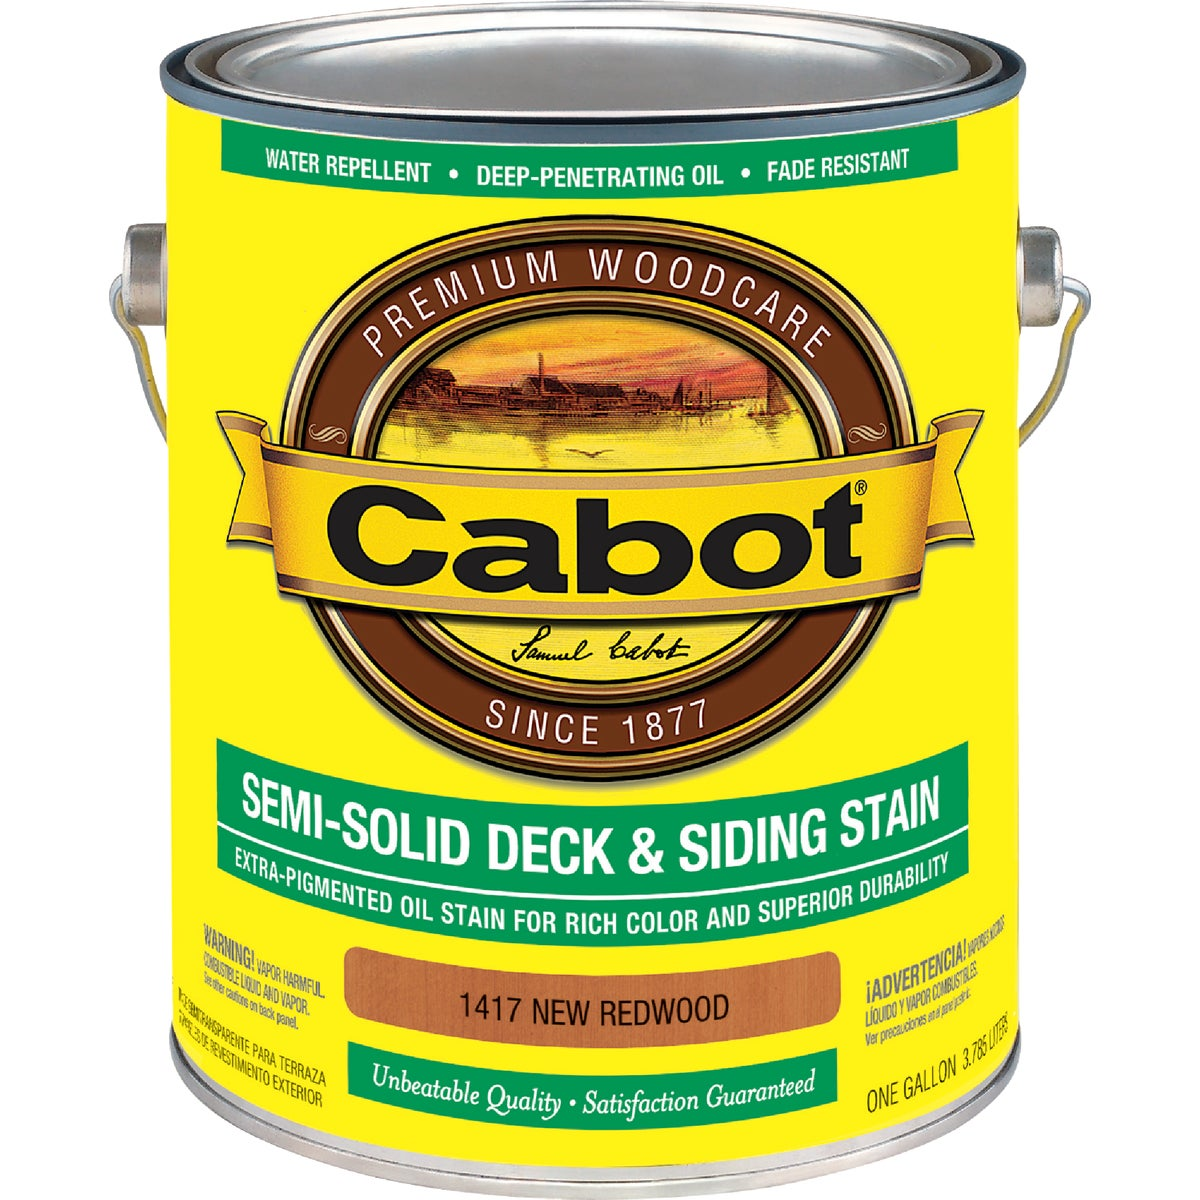 N REDWD S-SOL DECK STAIN - 140.0001417.007 by Valspar Corp